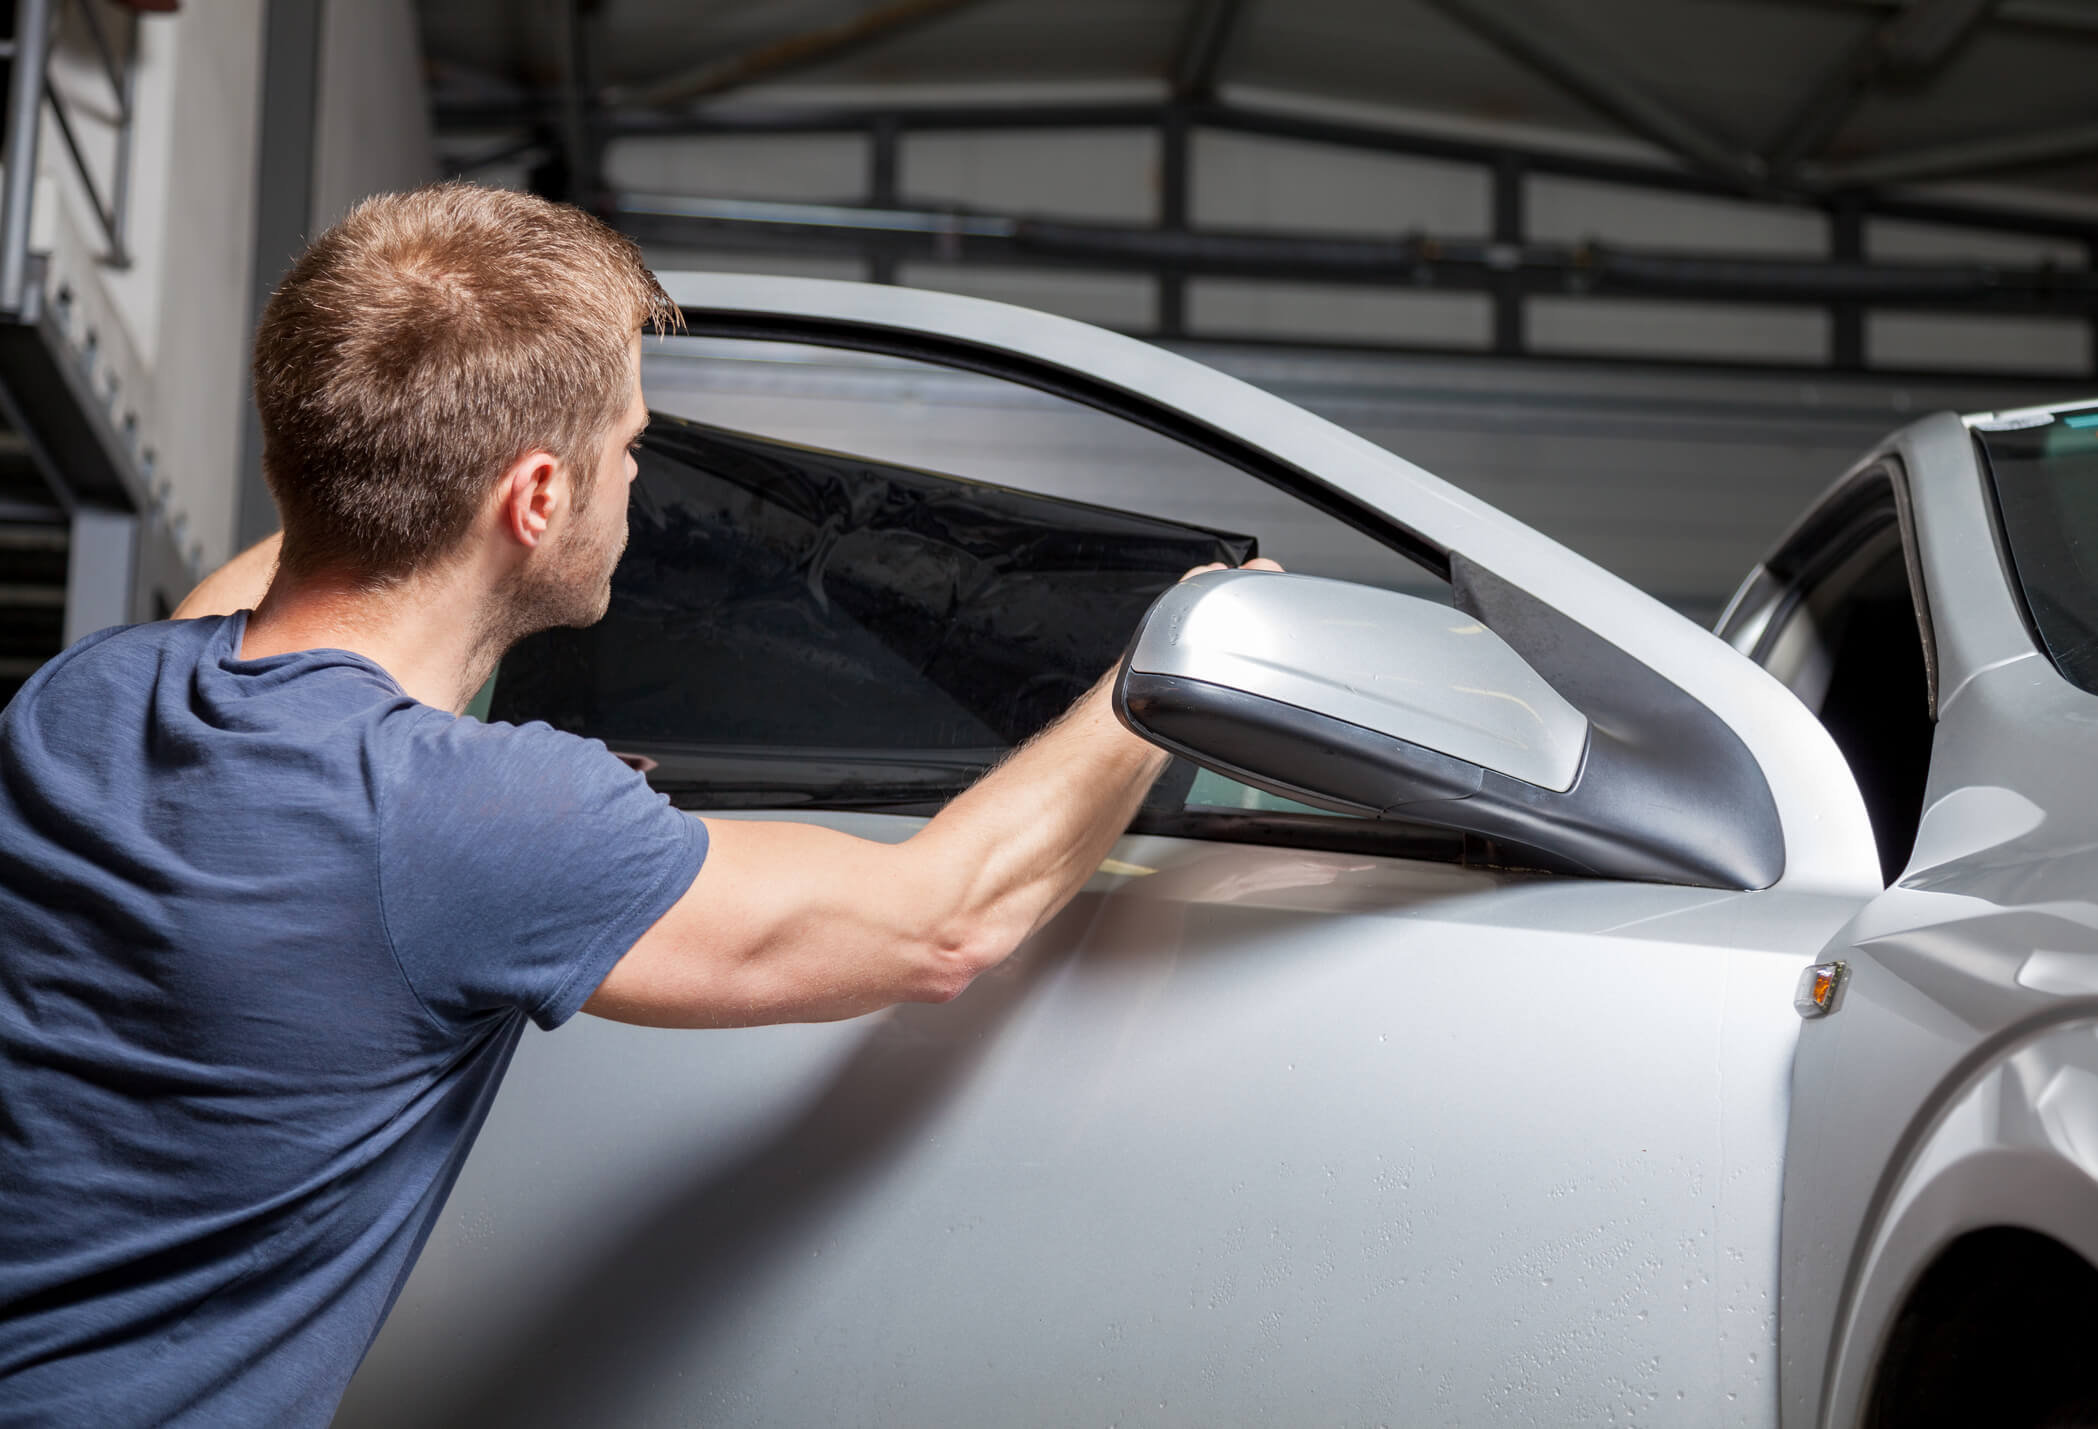 Advantages of 3M window tint